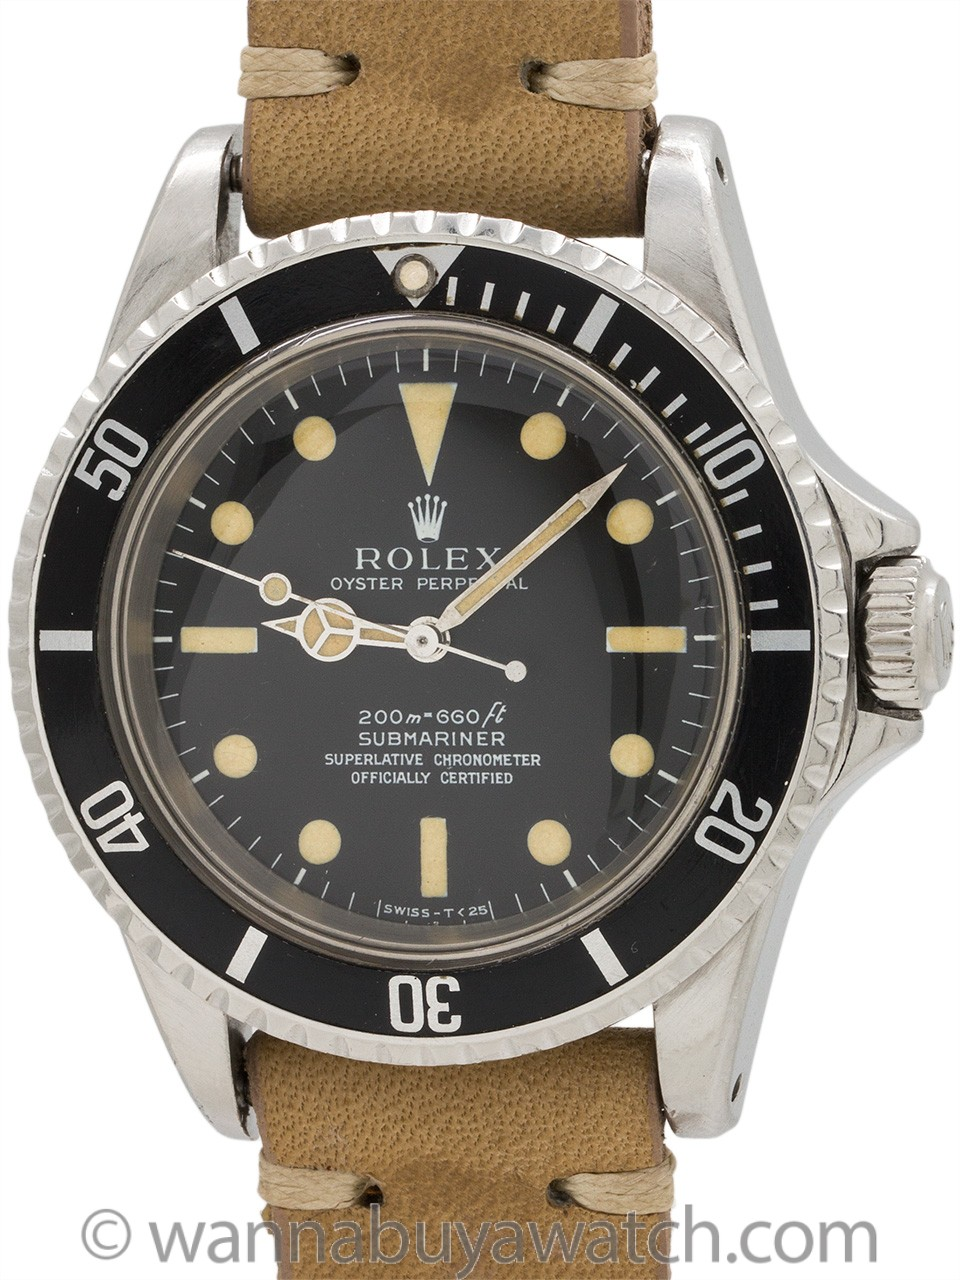 Rolex Submariner ref 5512 Meters First circa 1967